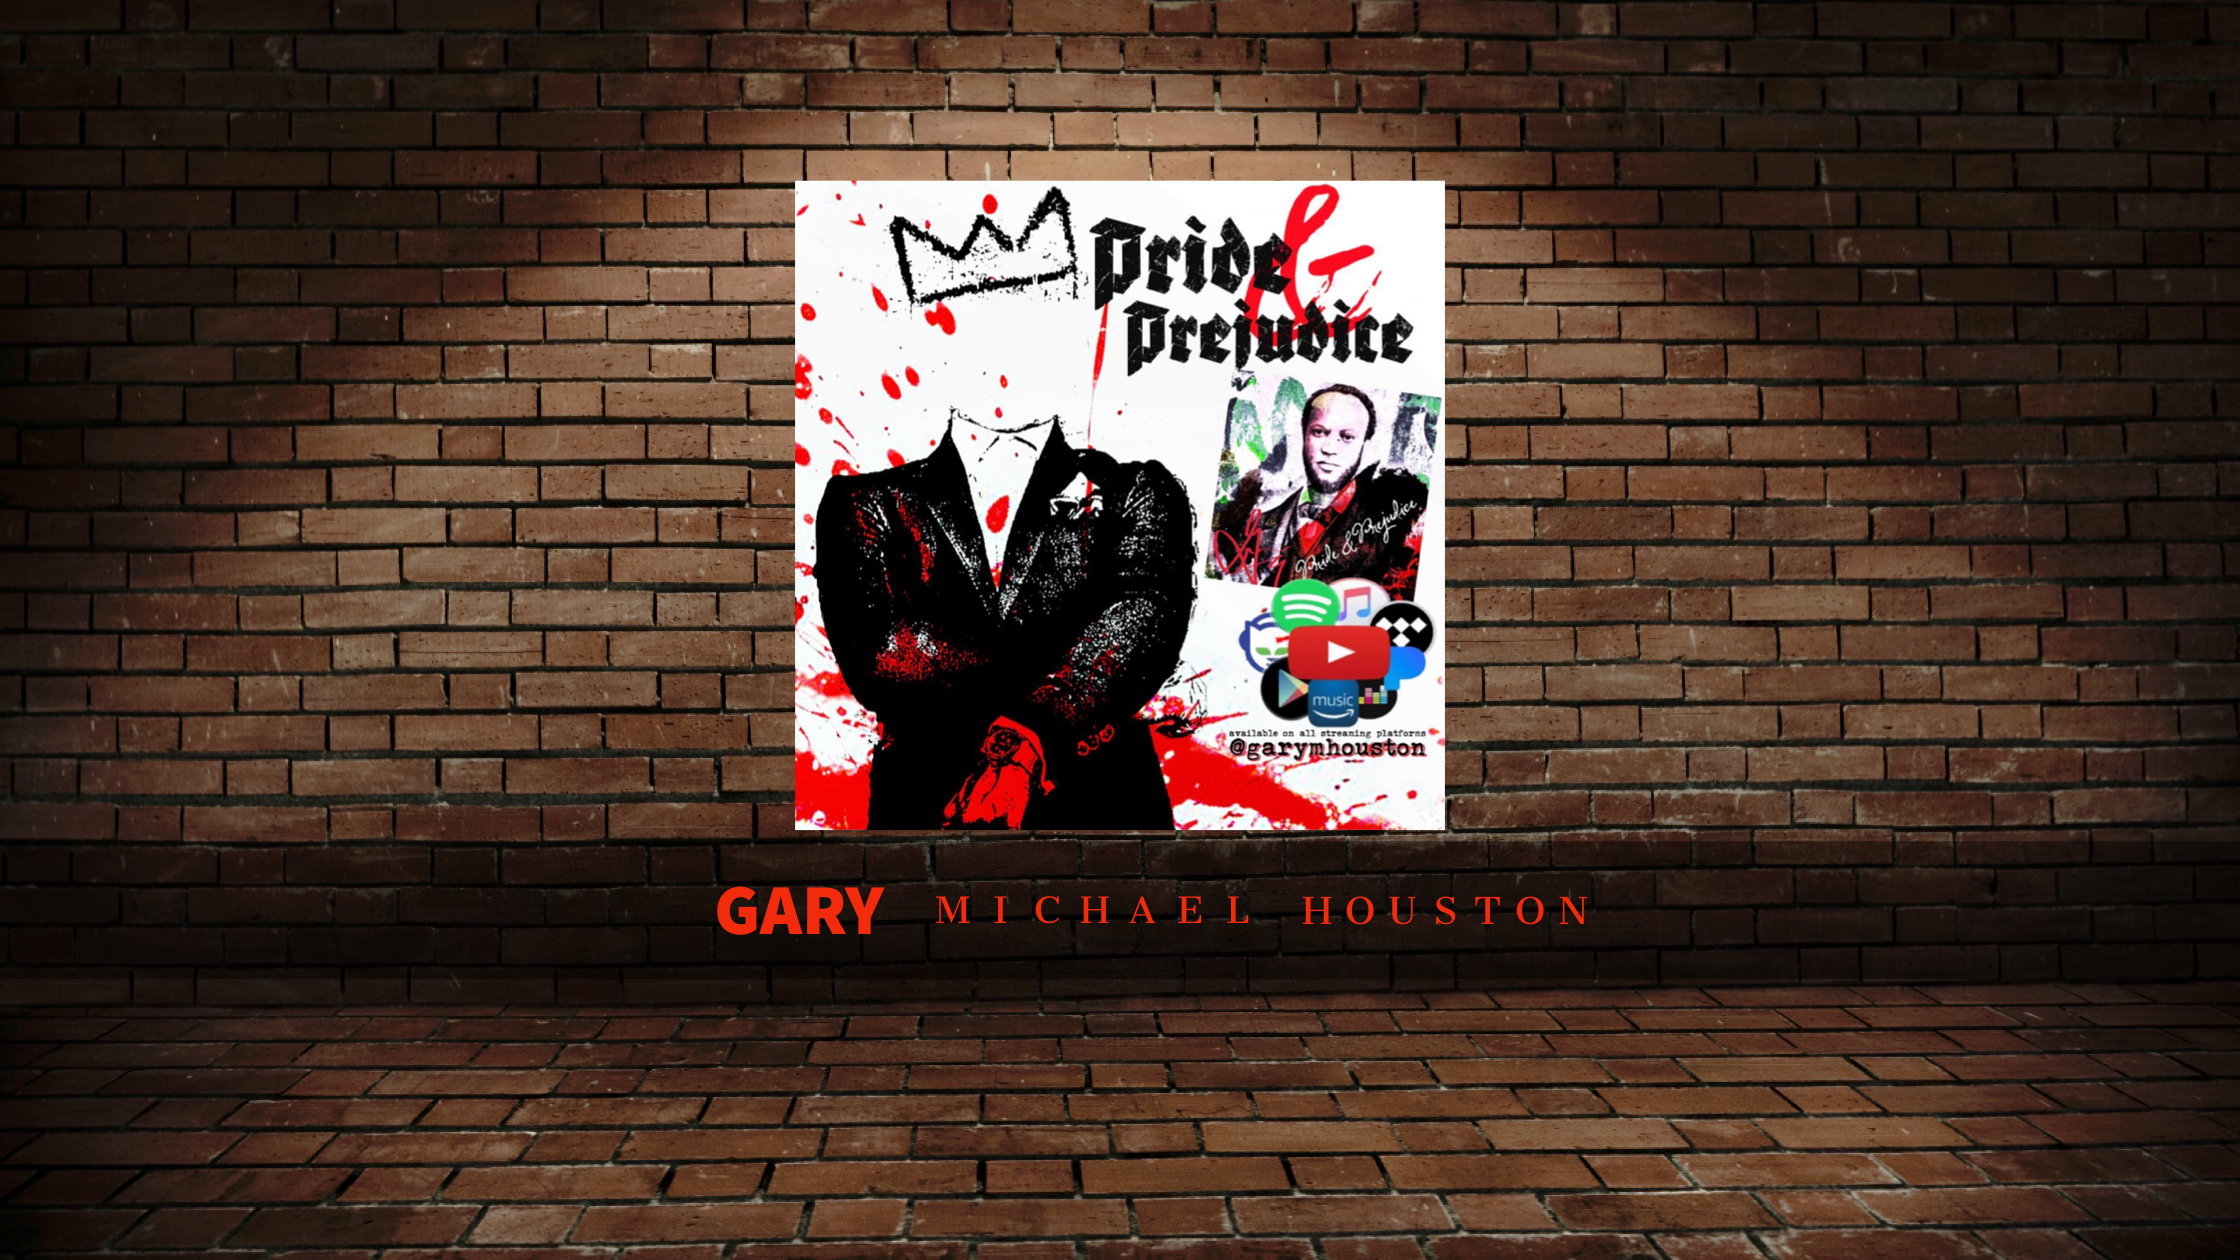 Gary Michael Houston Delivers Visuals With Latest Release [Pride & Prejudice]